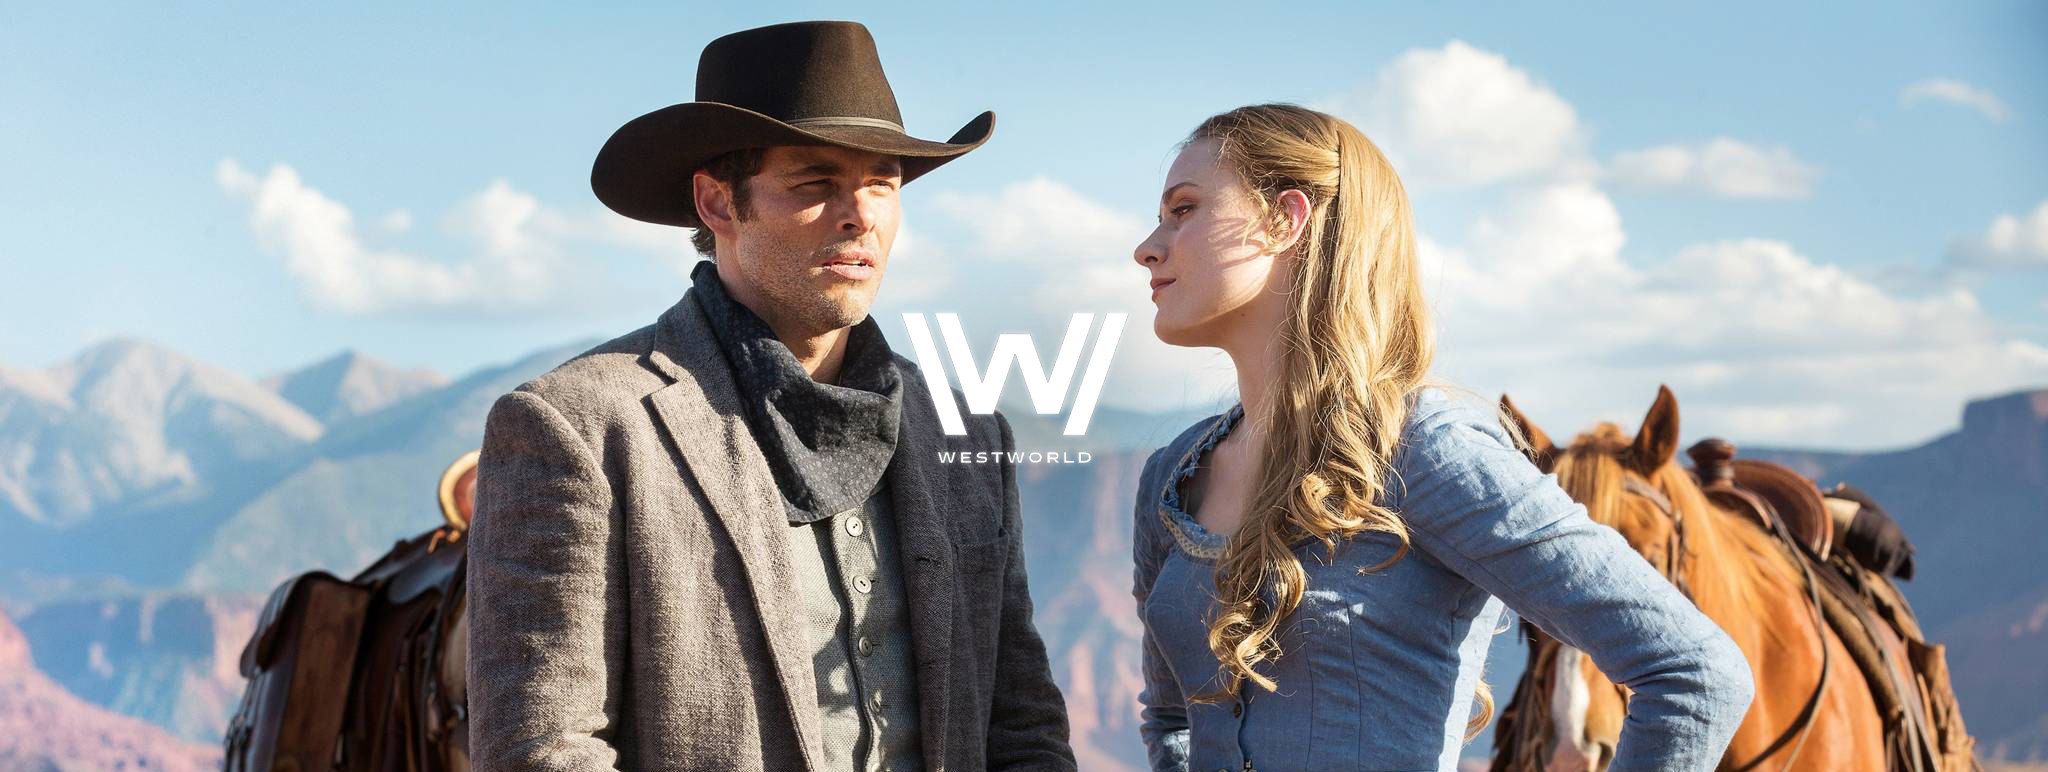 Website_Projects-Westworld3.jpg